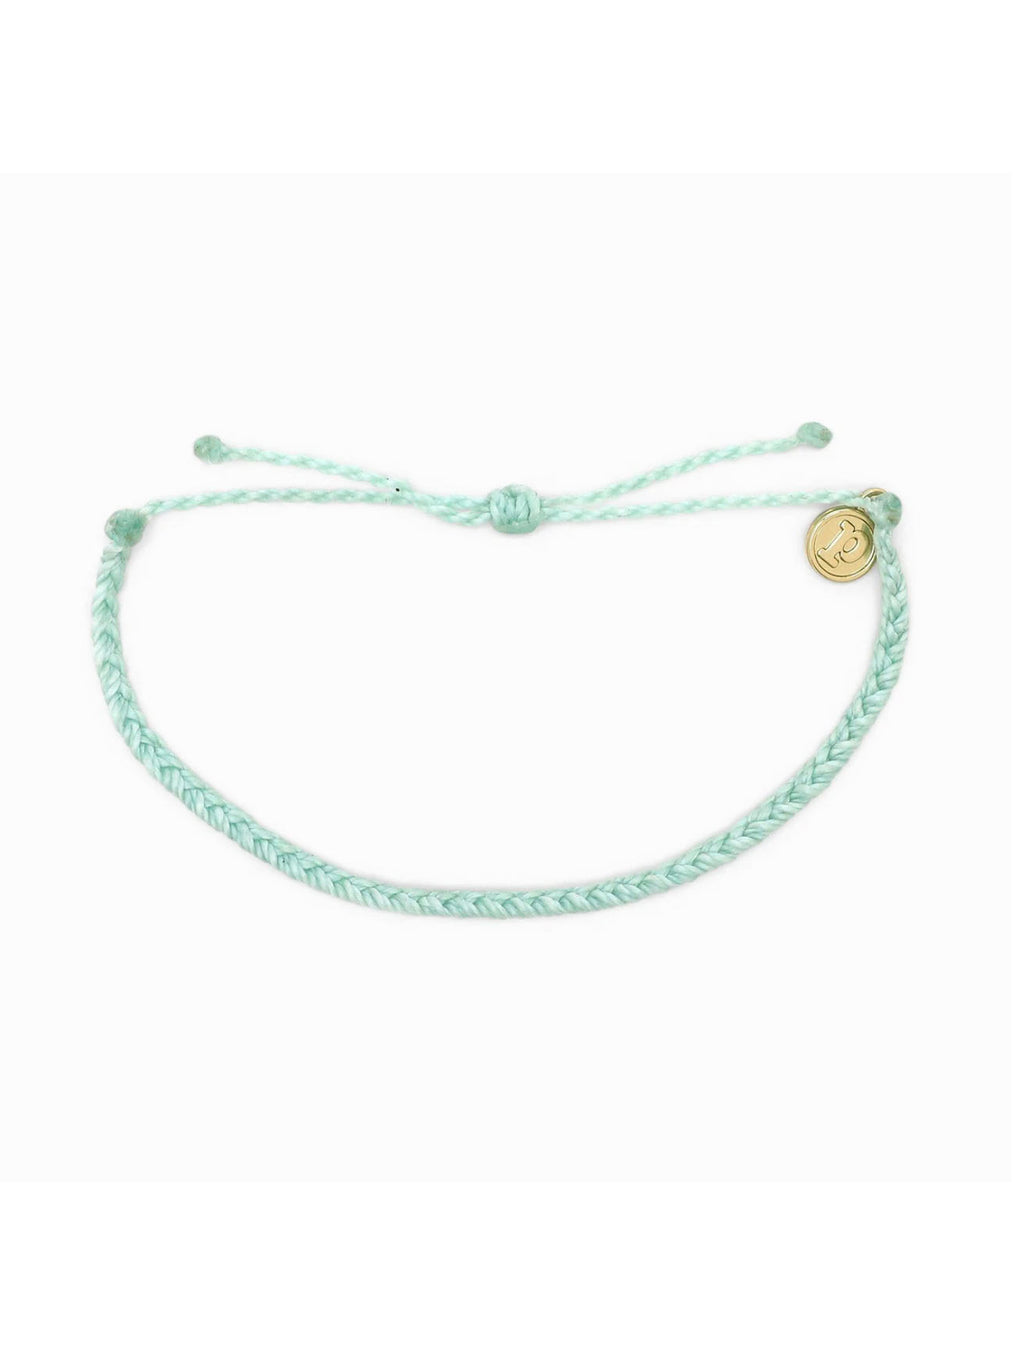 Pura Vida Mini Braid Bracelet in Sea Foam